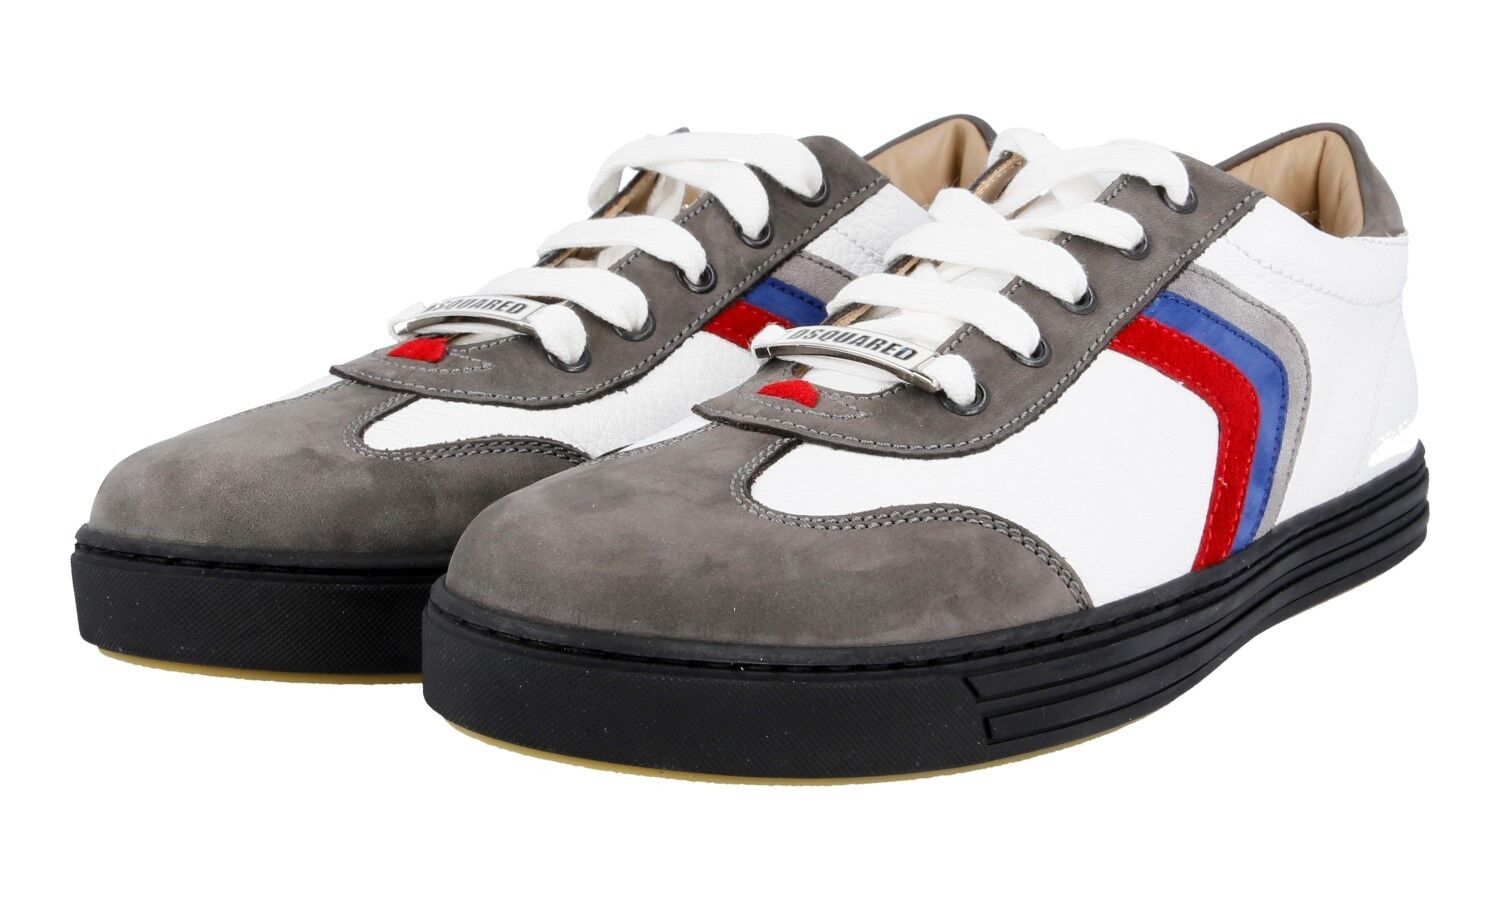 257f4abe896 AUTHENTIC LUXURY DSQUARED SHOES SN408 GREY NEW US 10 SNEAKERS  ntuifk4840-Athletic Shoes